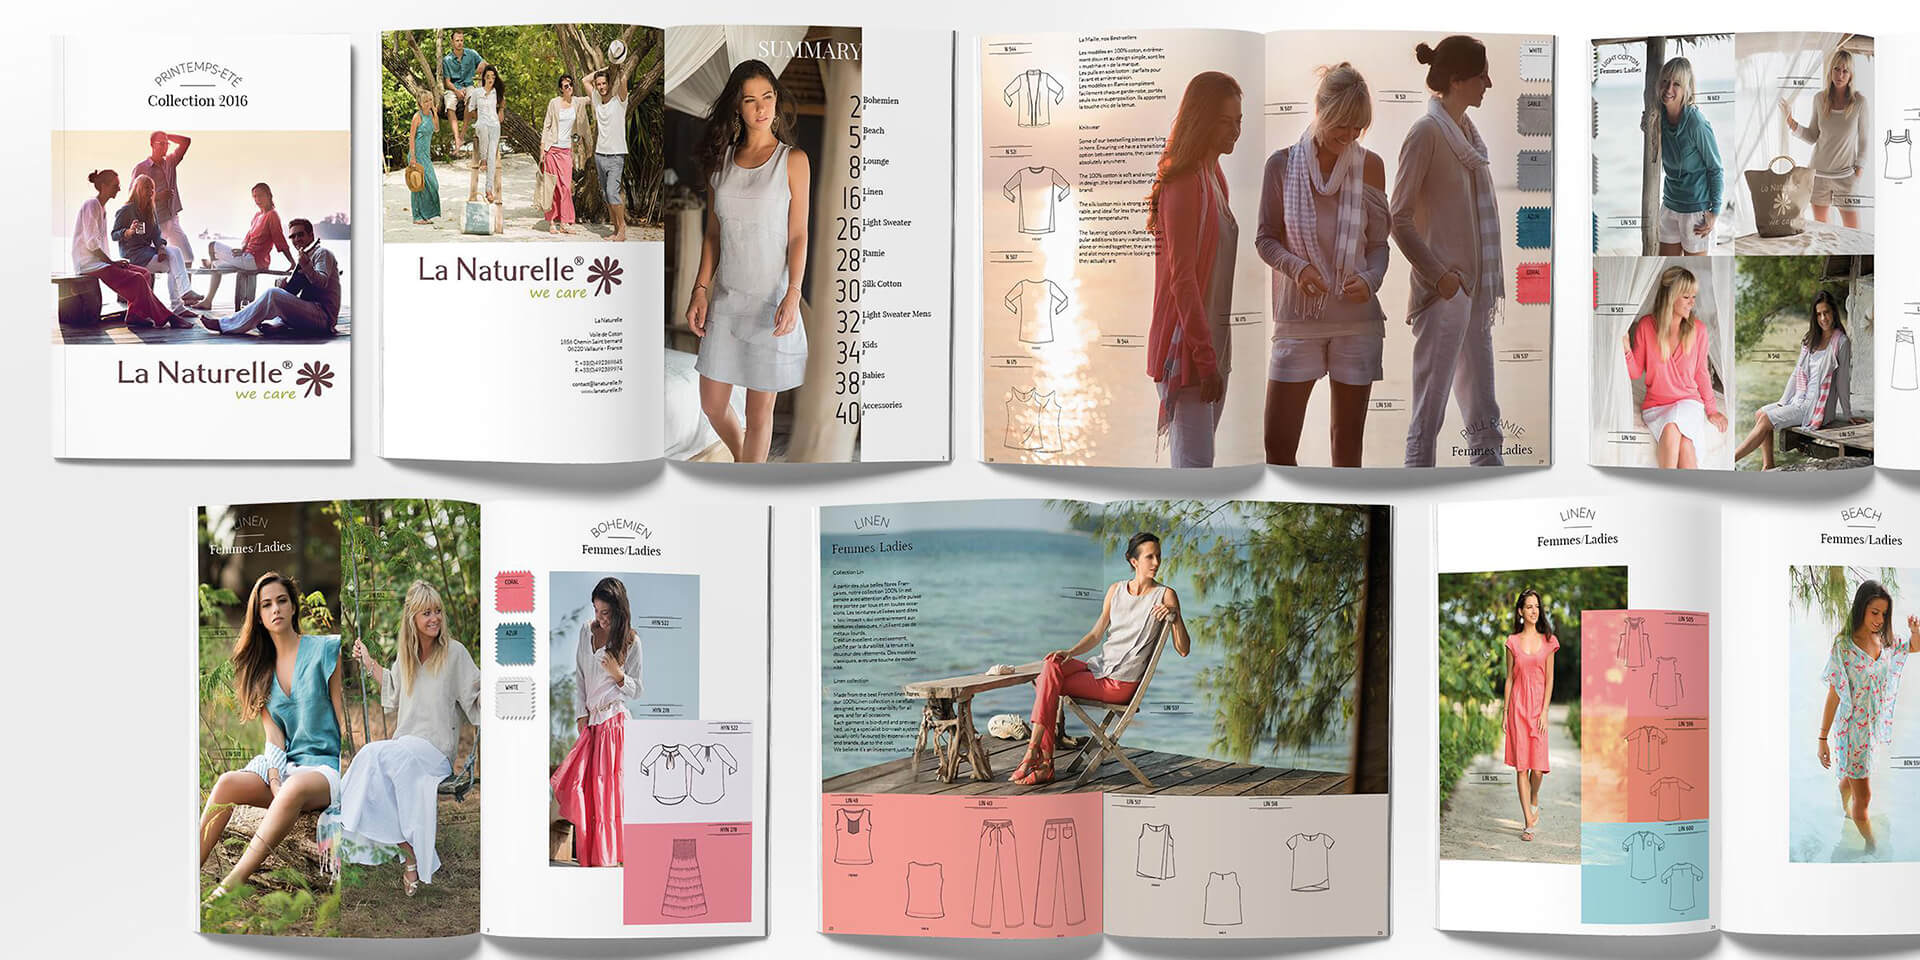 marketing ads print lanaturell catalogue french fashion art works collection pattern bali layout graphic design